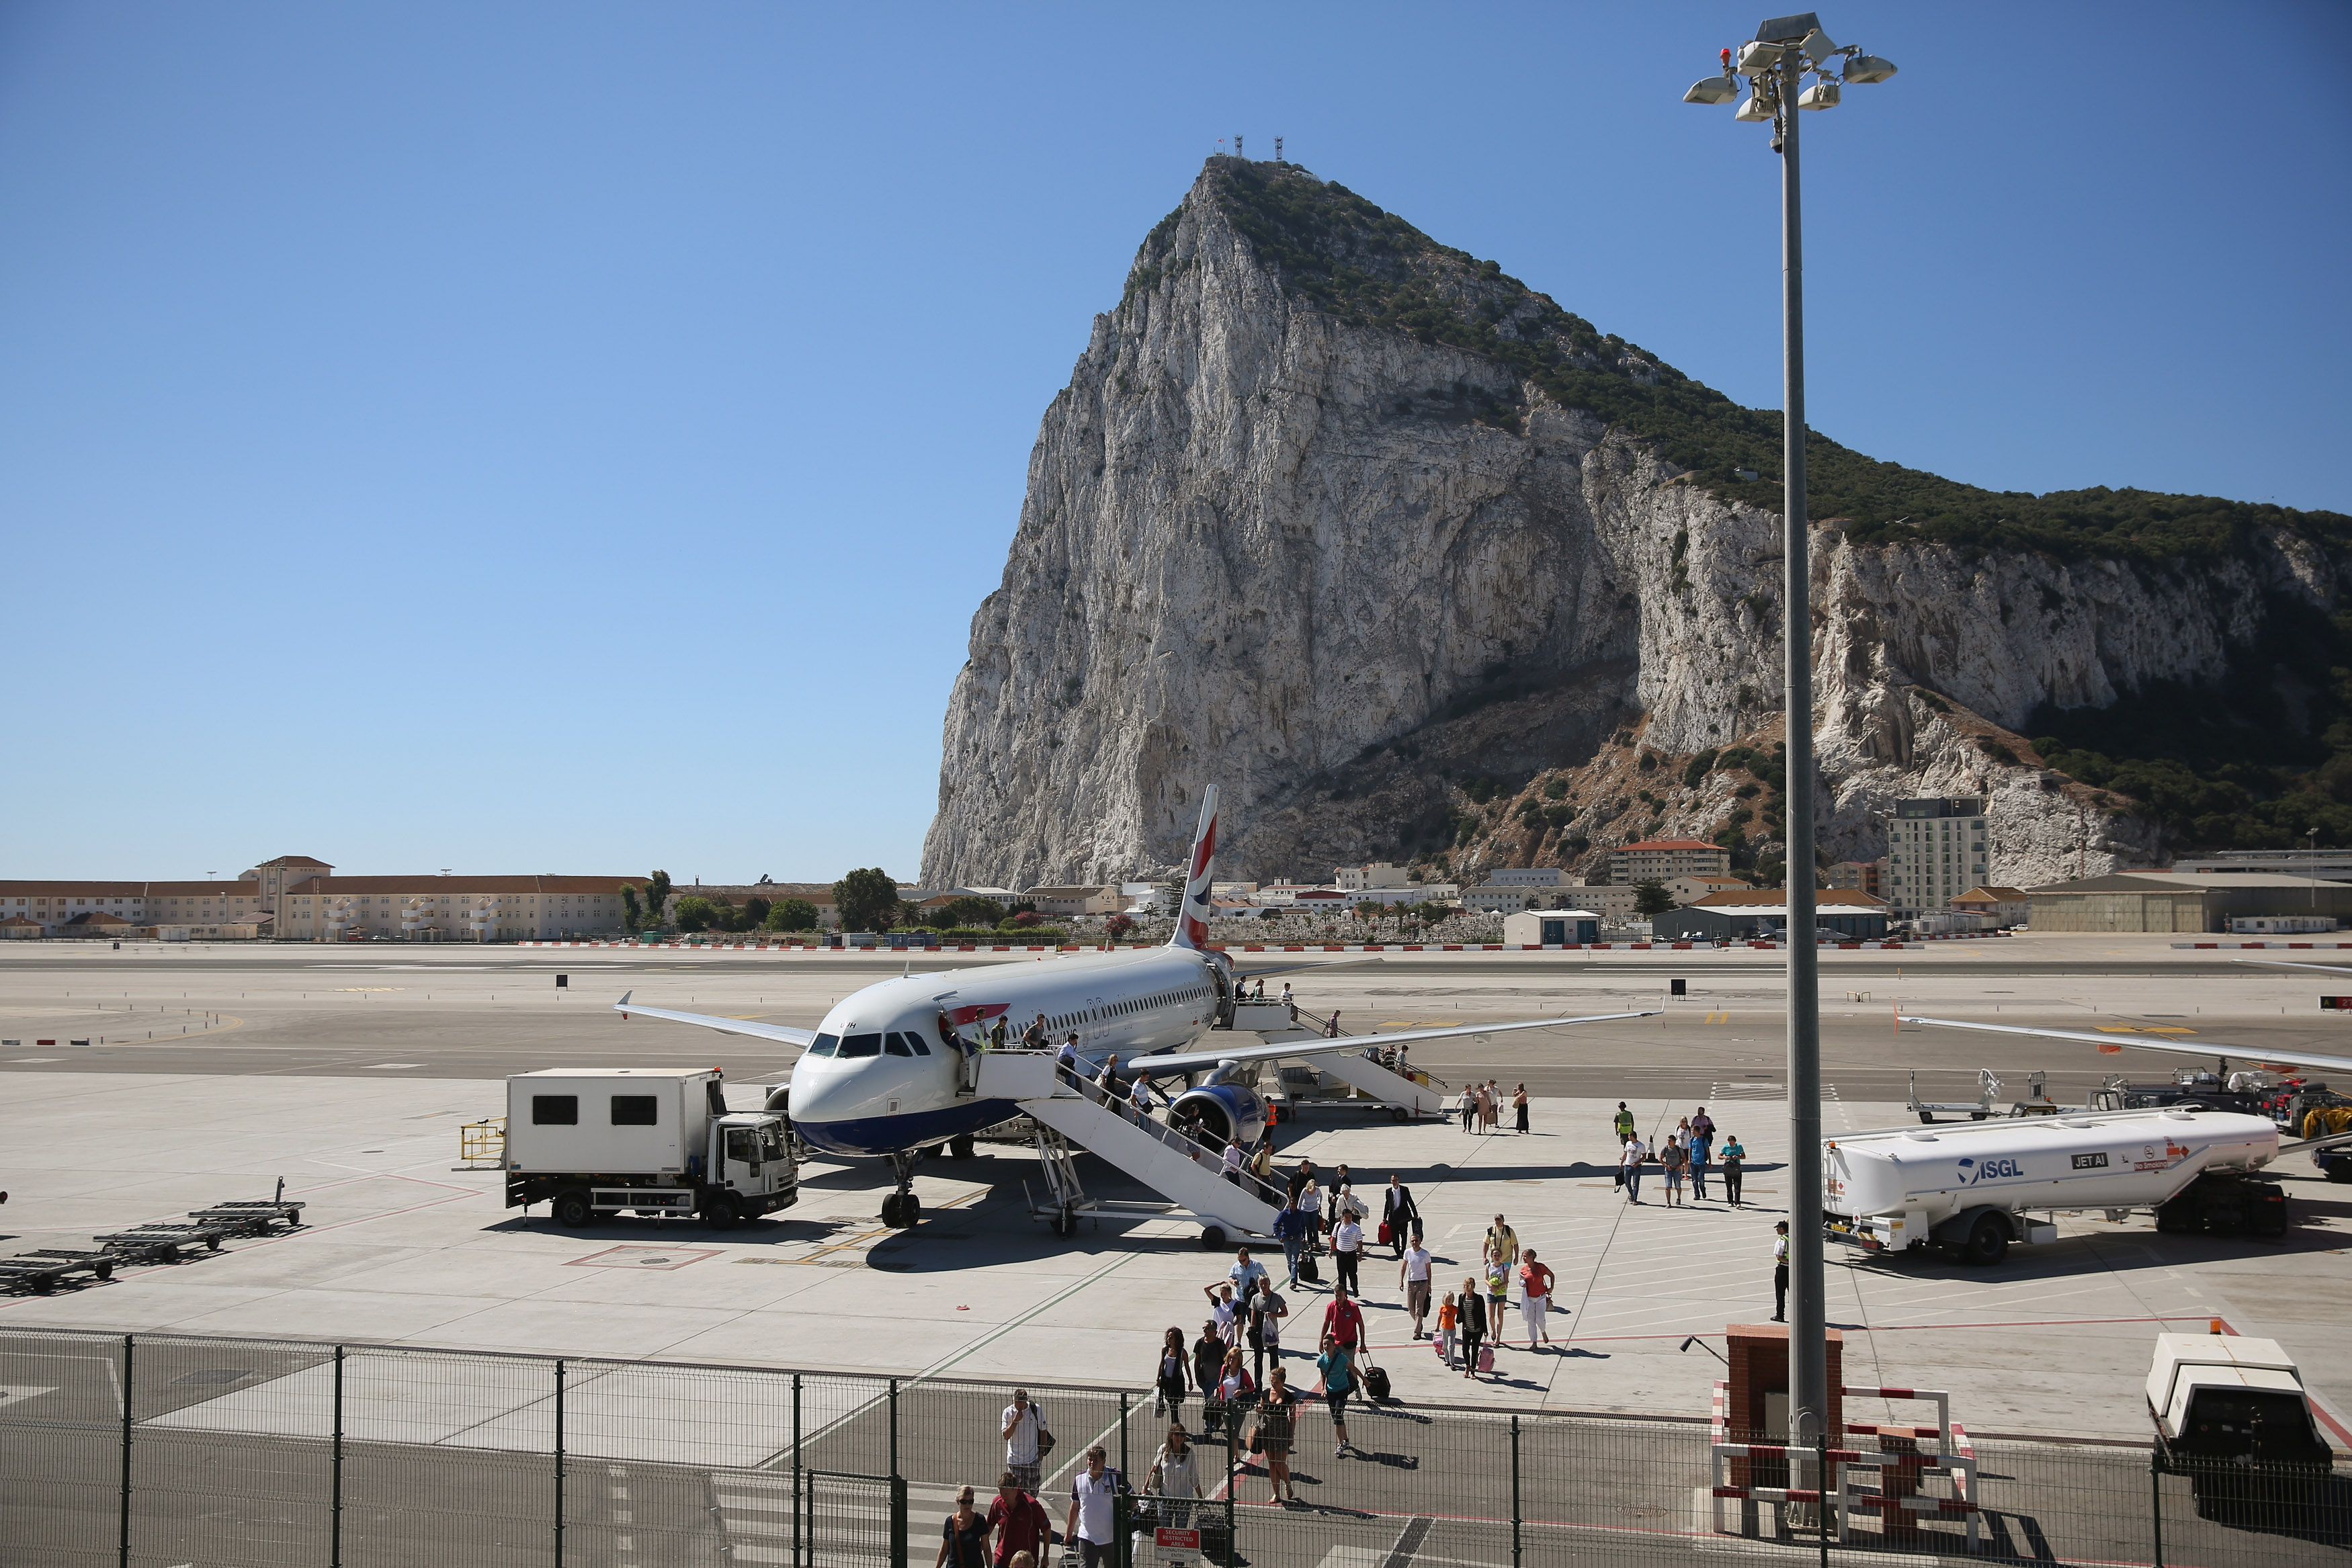 Slide 14 of 20: GIBRALTAR - AUGUST 08: Passengers disembark a flight shortly after landing at Gibraltar International Airport on August 8, 2013 in Gibraltar. David Cameron has spoken with his Spanish counterpart, Mariano Rajoy, and Mr Rajoy has offered to 'reduce measures' at the Gibraltar border. Tensions between the British and Spanish governments have been raised on issues surrounding the sovereignty of Gibraltar. An increase in Spanish border crossing checks between the Rock and mainland Spain, leading to lengthy queues, is widely considered to be a retaliatory move for the construction of an artificial reef in British waters, which it is claimed has had a negative impact on Spanish fishing vessels in the area. (Photo by Oli Scarff/Getty Images)